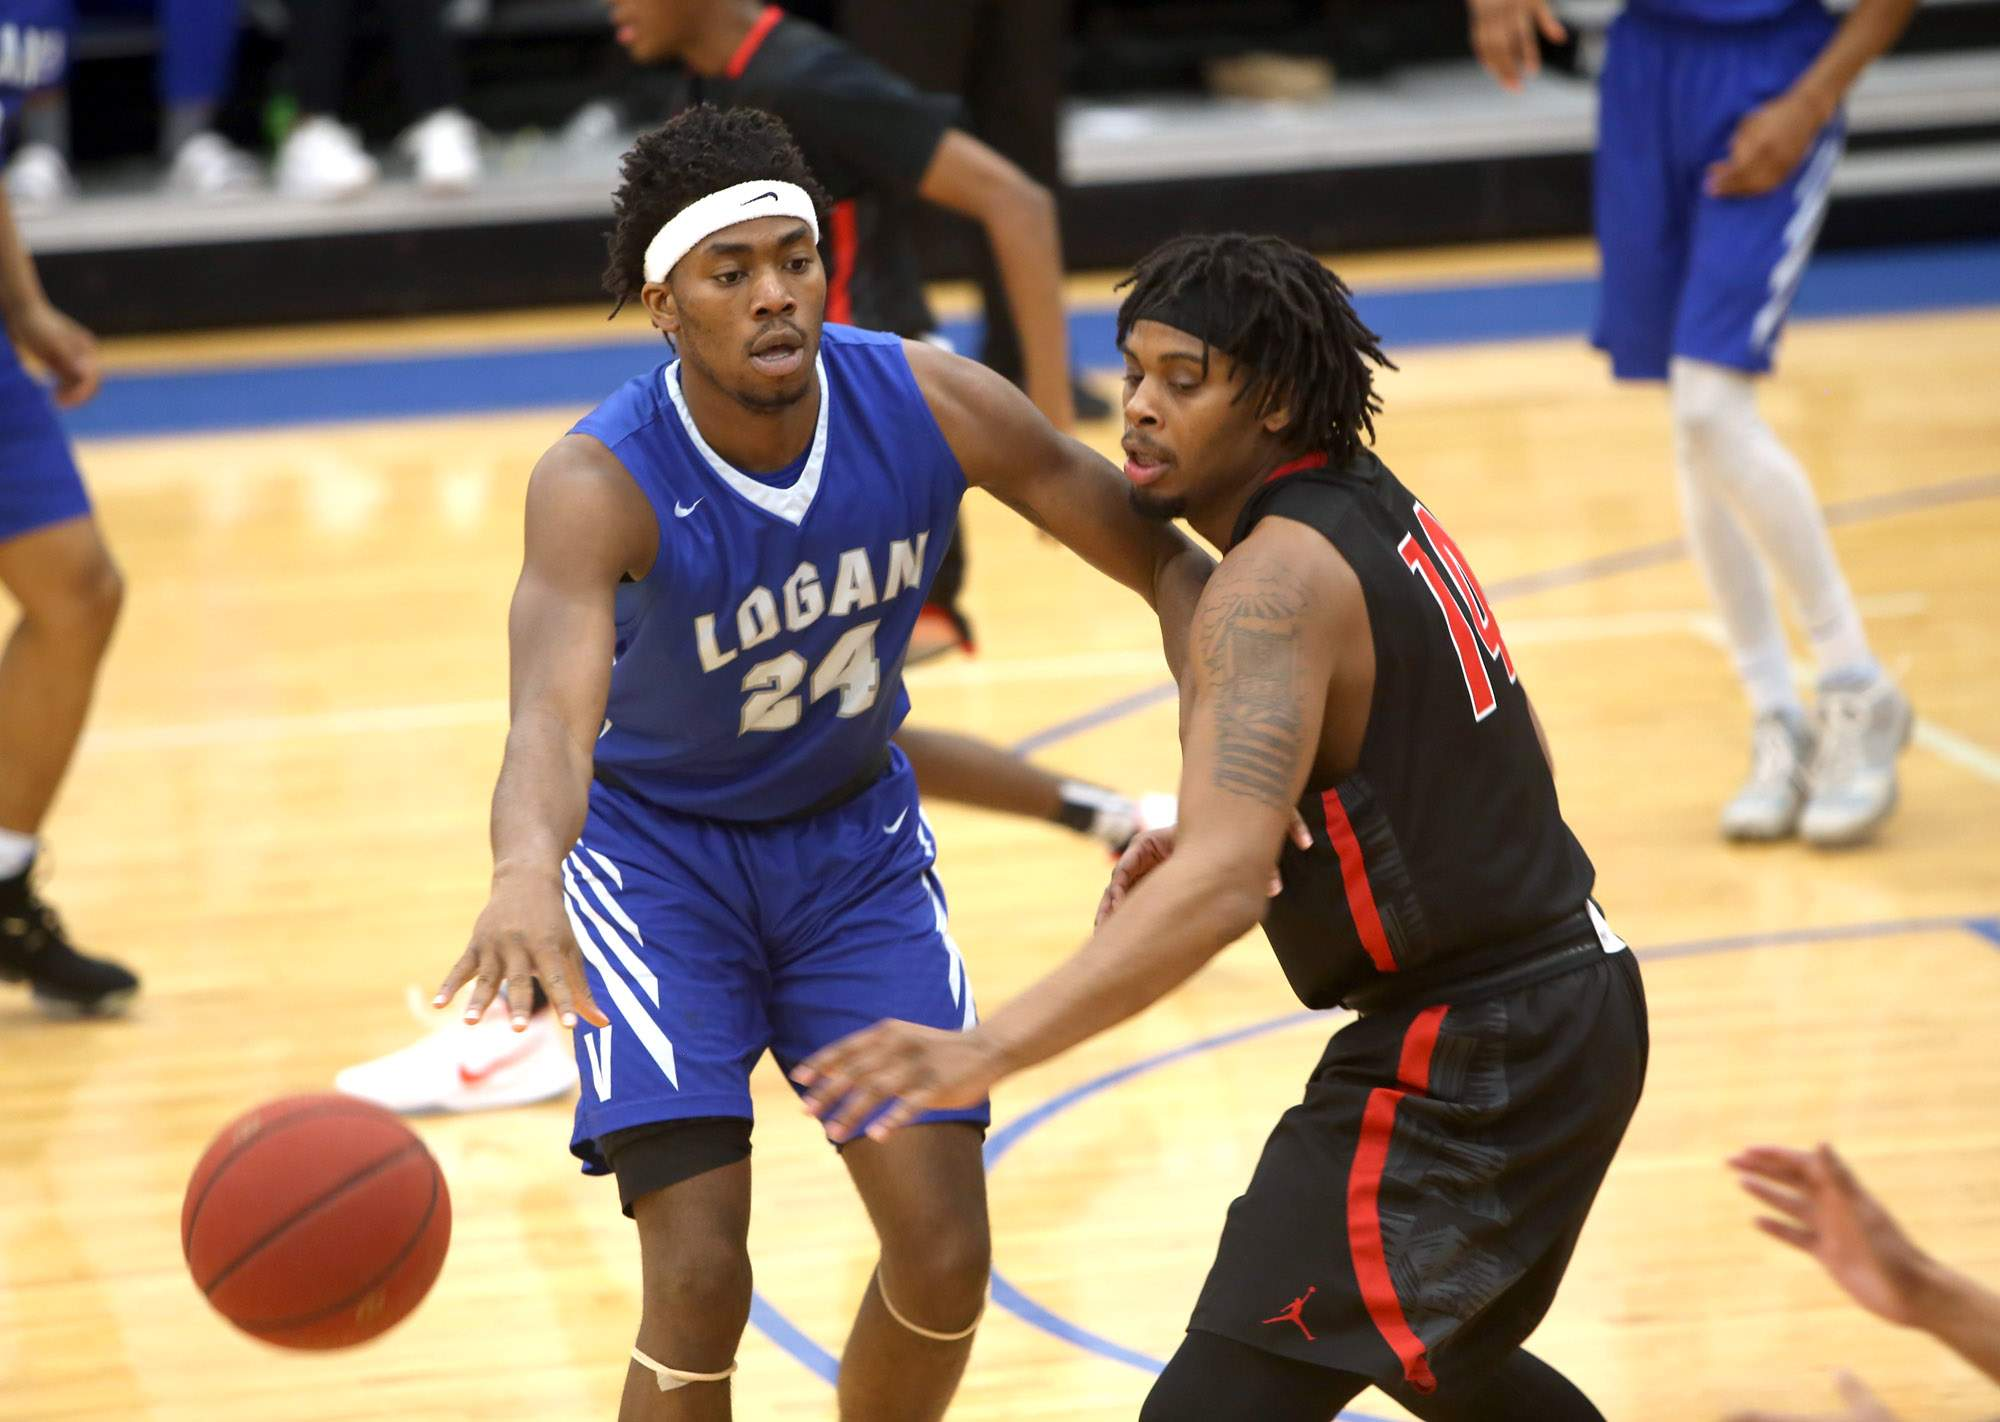 Damion Taylor passes the ball Wednesday night.